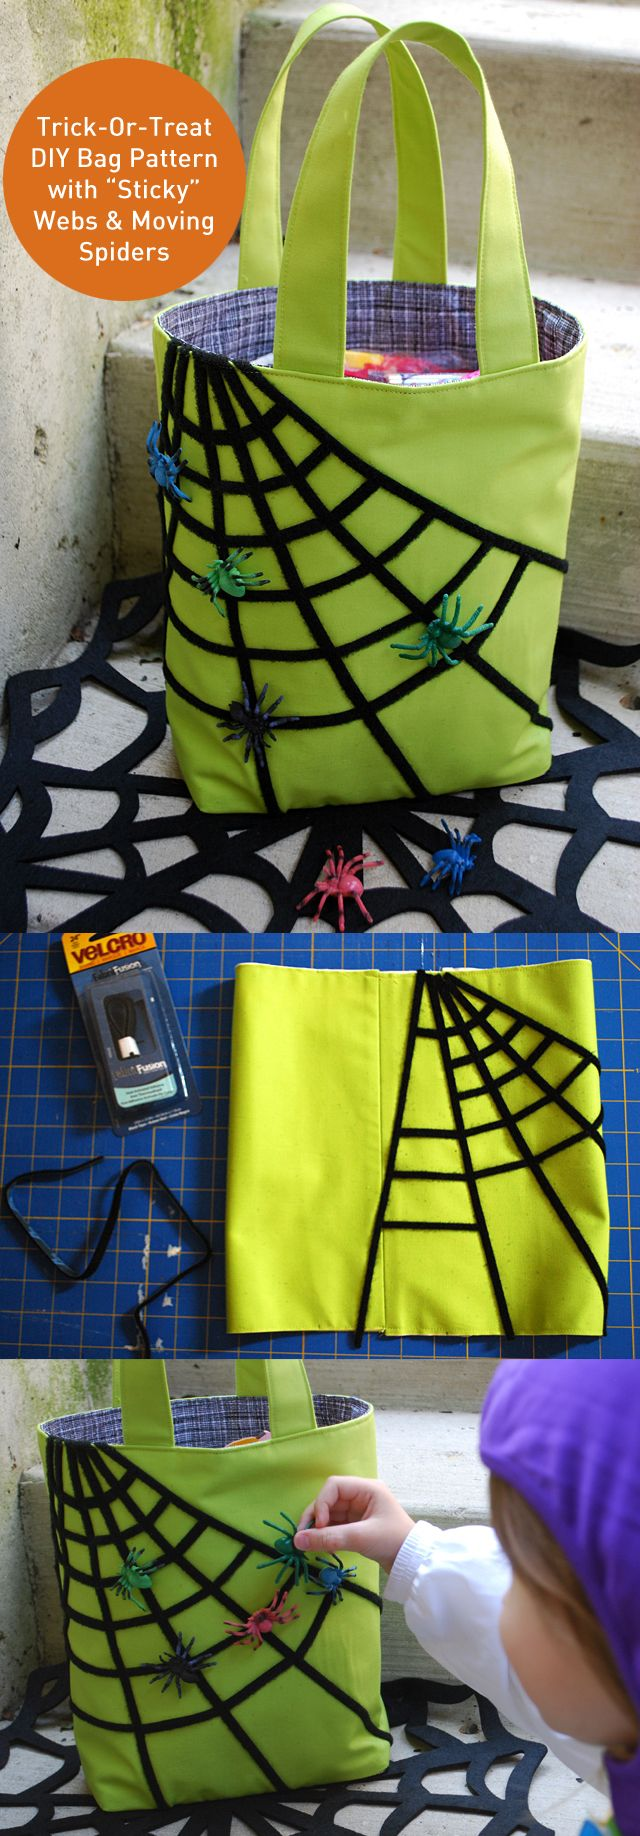 "Fun DIY Trick Or Treat bag! Cut thin strips of Velcro fasteners to make ""sticky"" webs and spiders kids can move around while they trick-or-treat for Halloween"